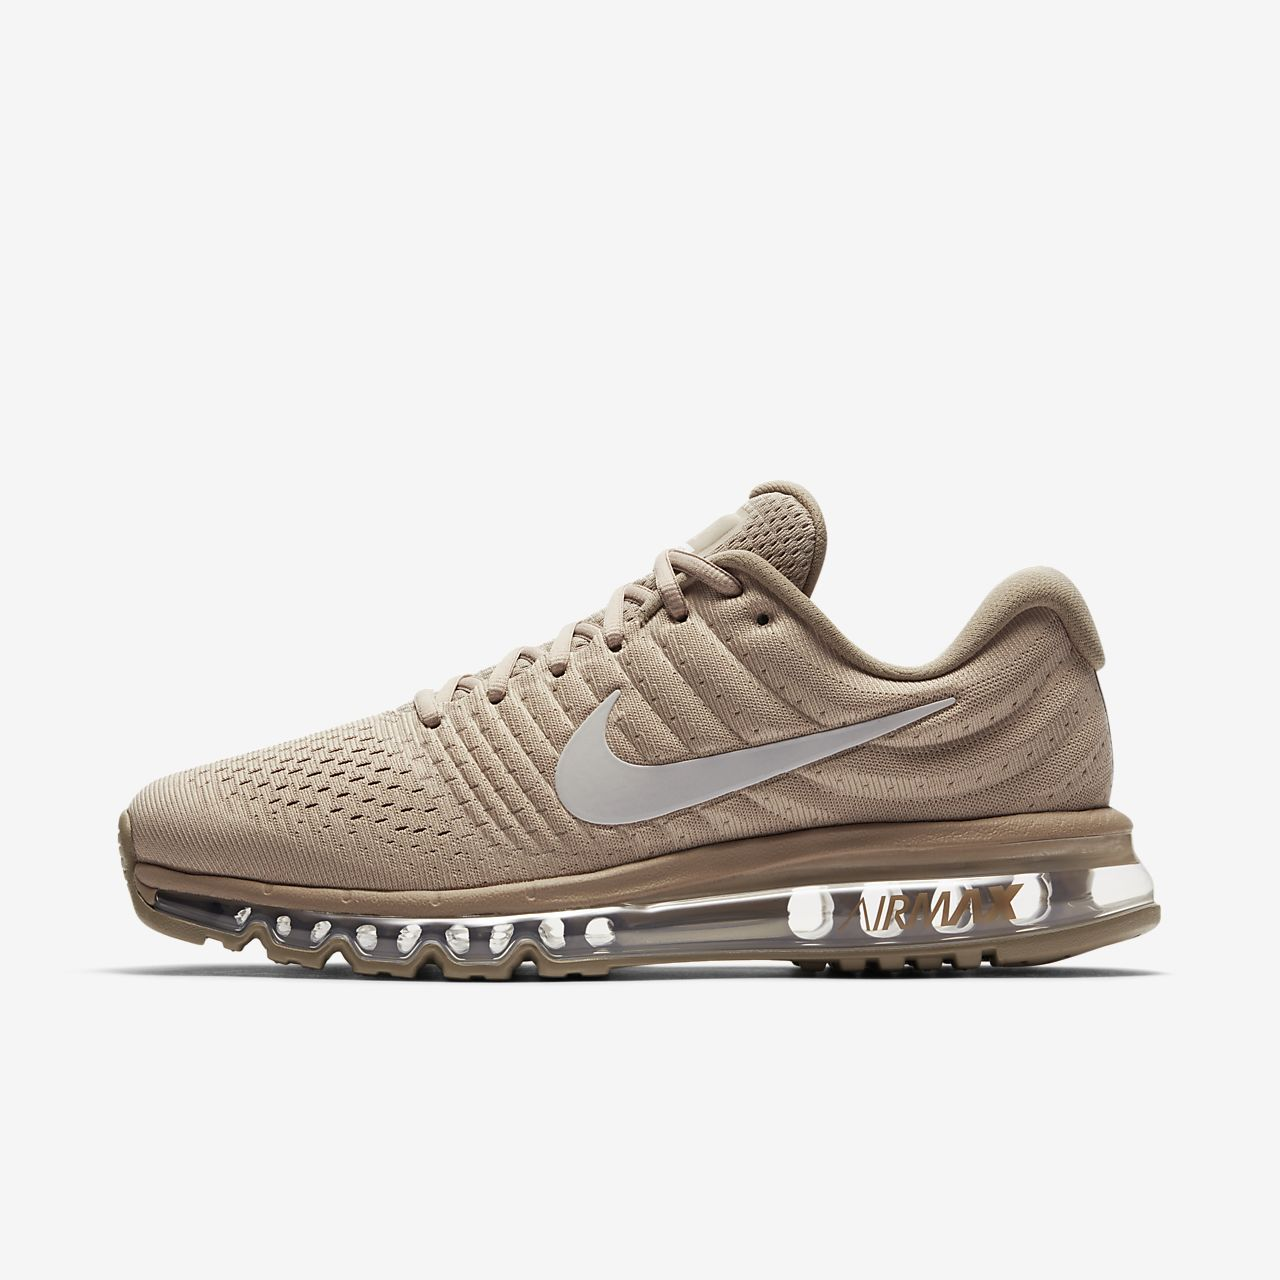 verschil nike air max 2017 dames en heren